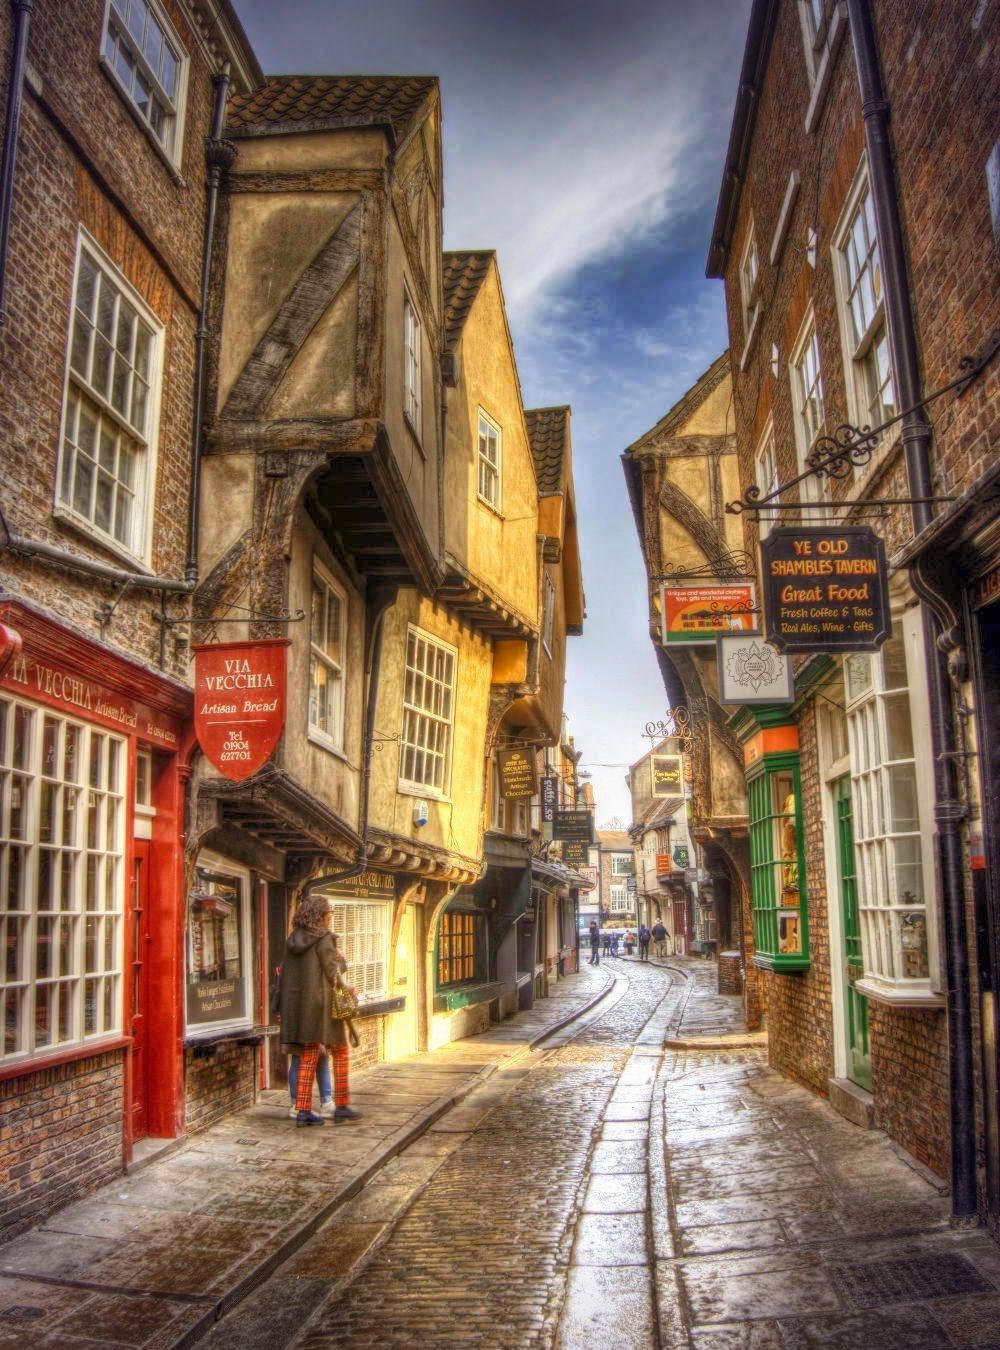 The Shambles, York. Credit Neil Howard, flickr